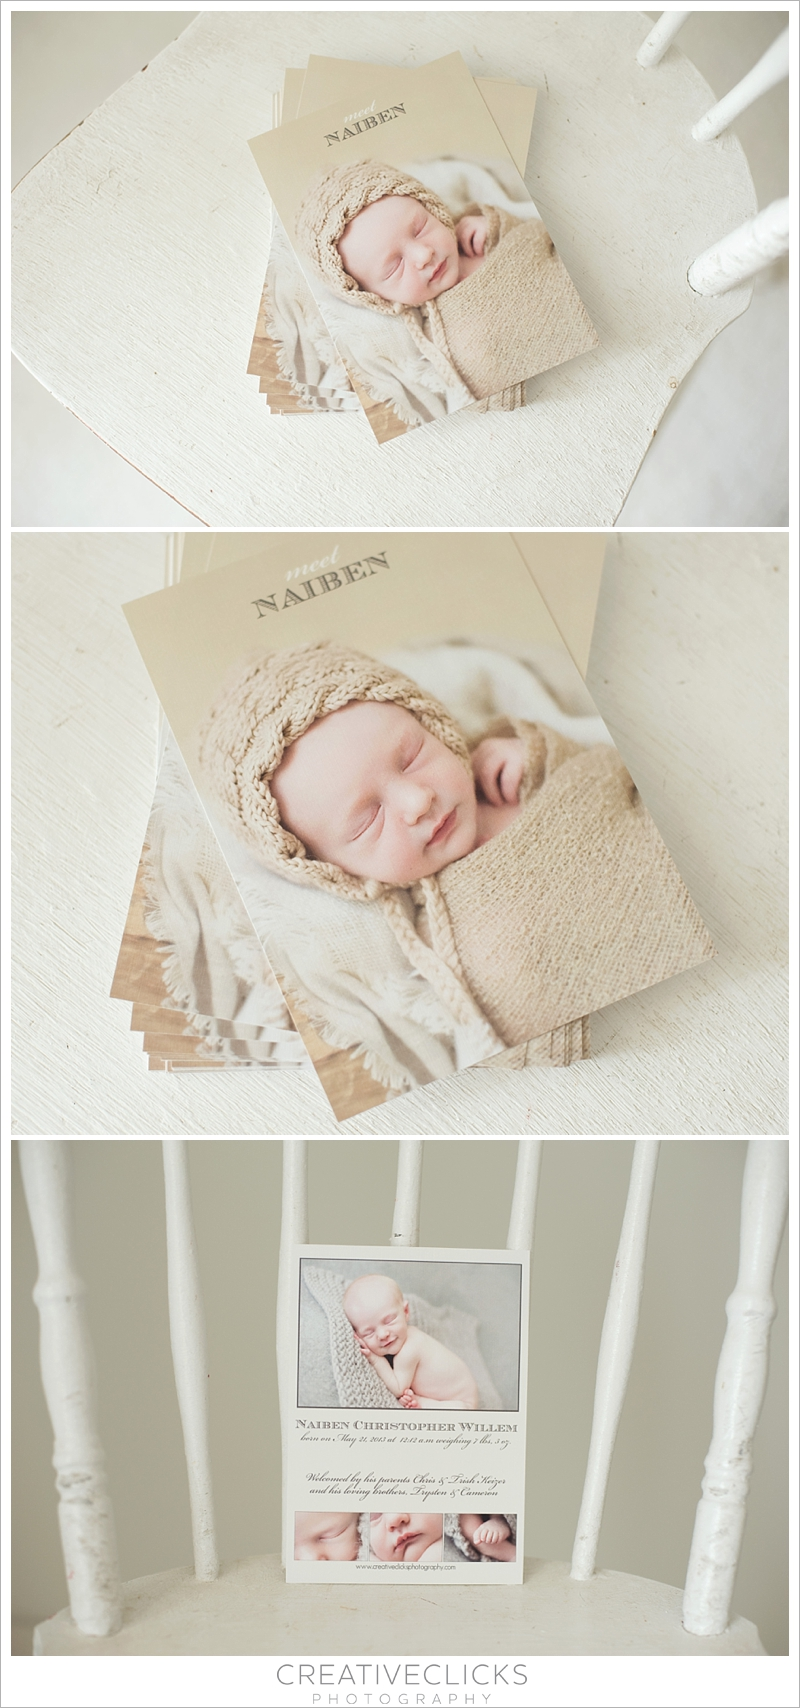 Custom linen birth announcements